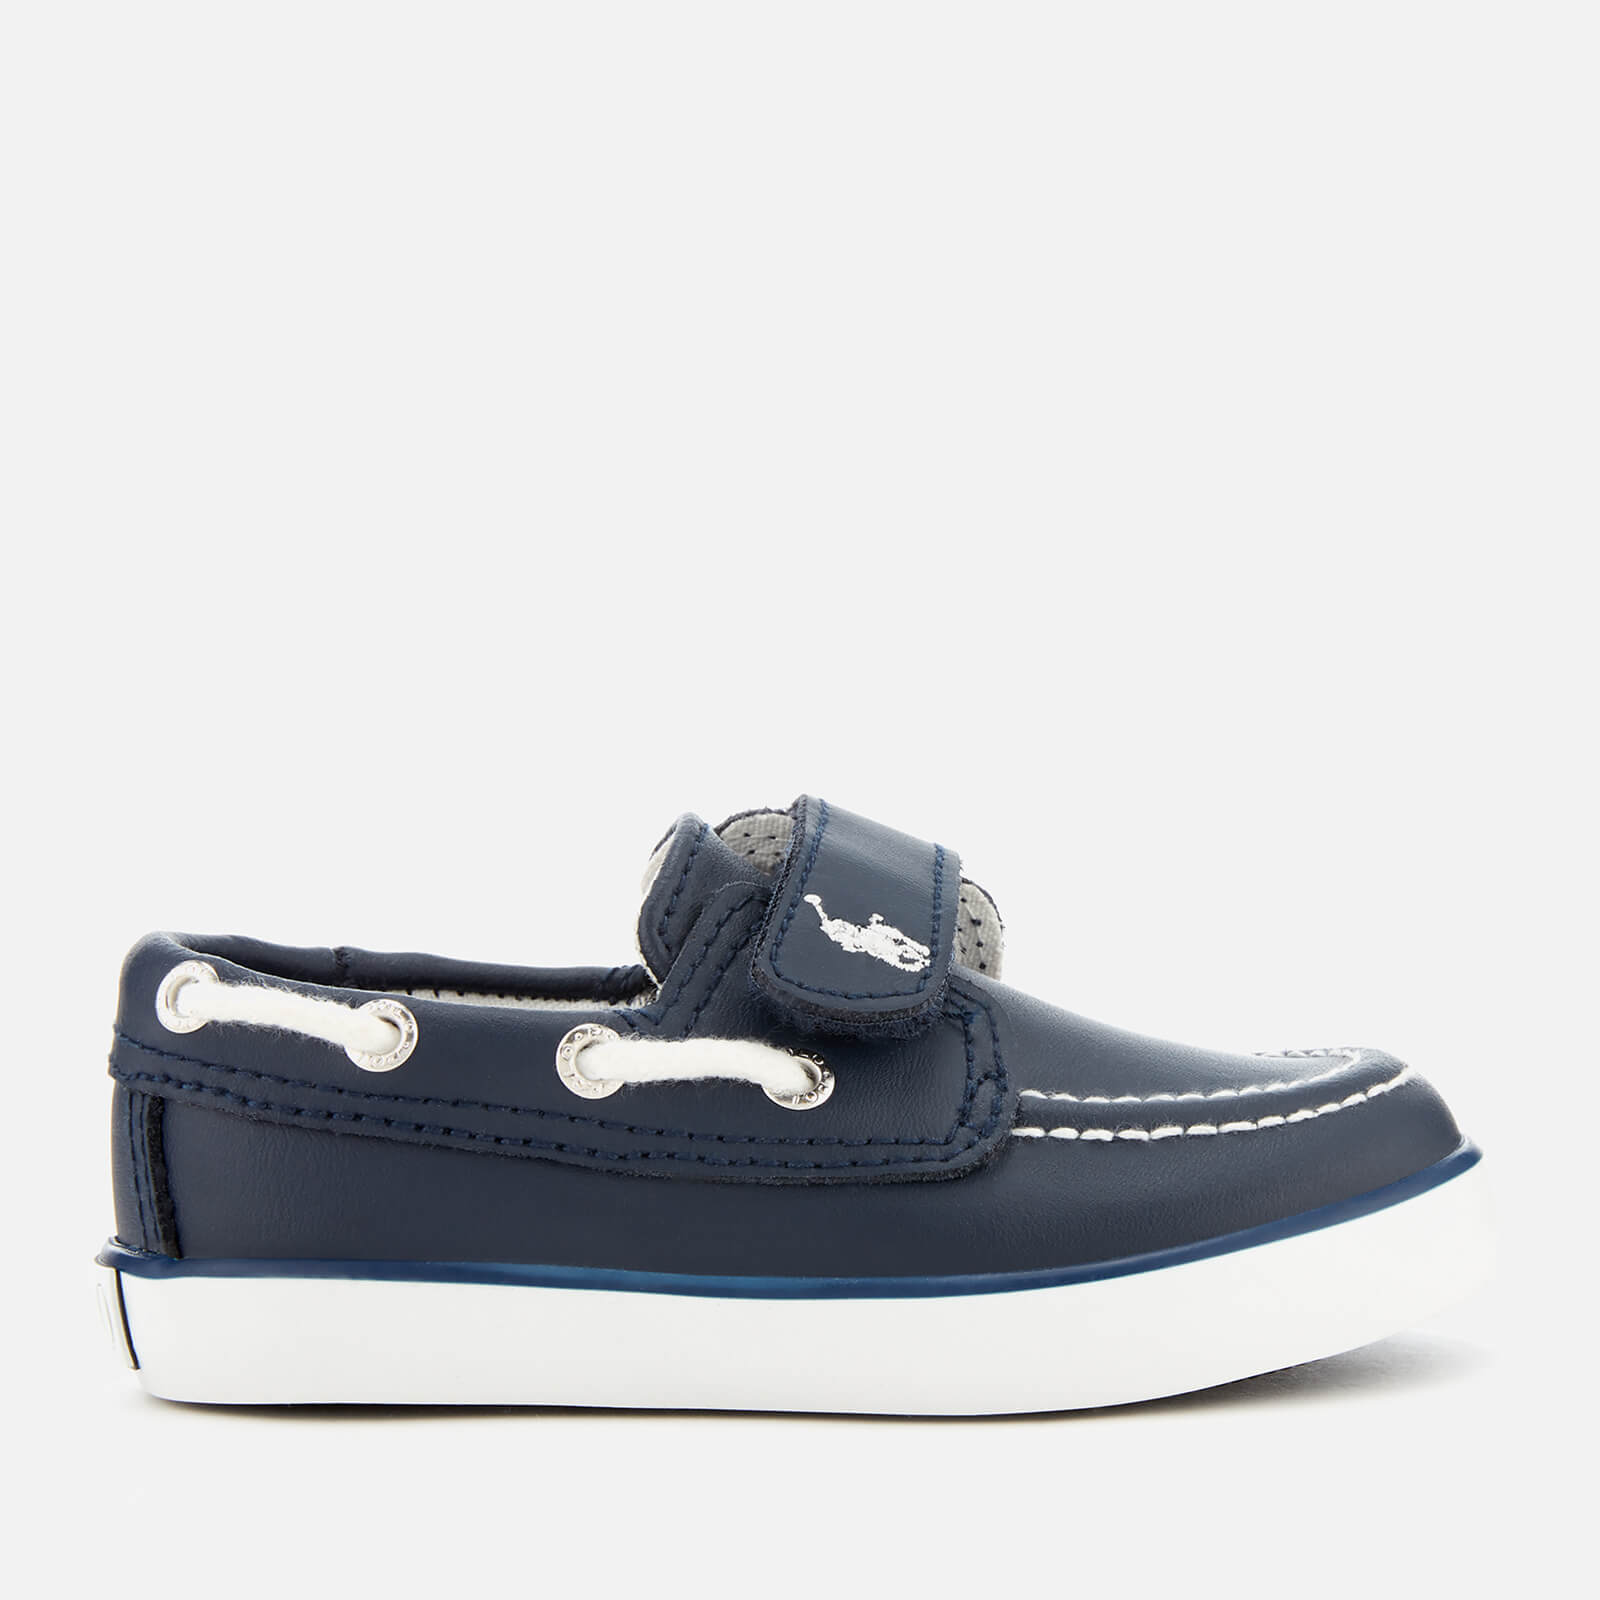 Polo ralph lauren toddlers sander ez leather boat shoes navy jpg 1600x1600 Shoes  polo d0aa89ec5